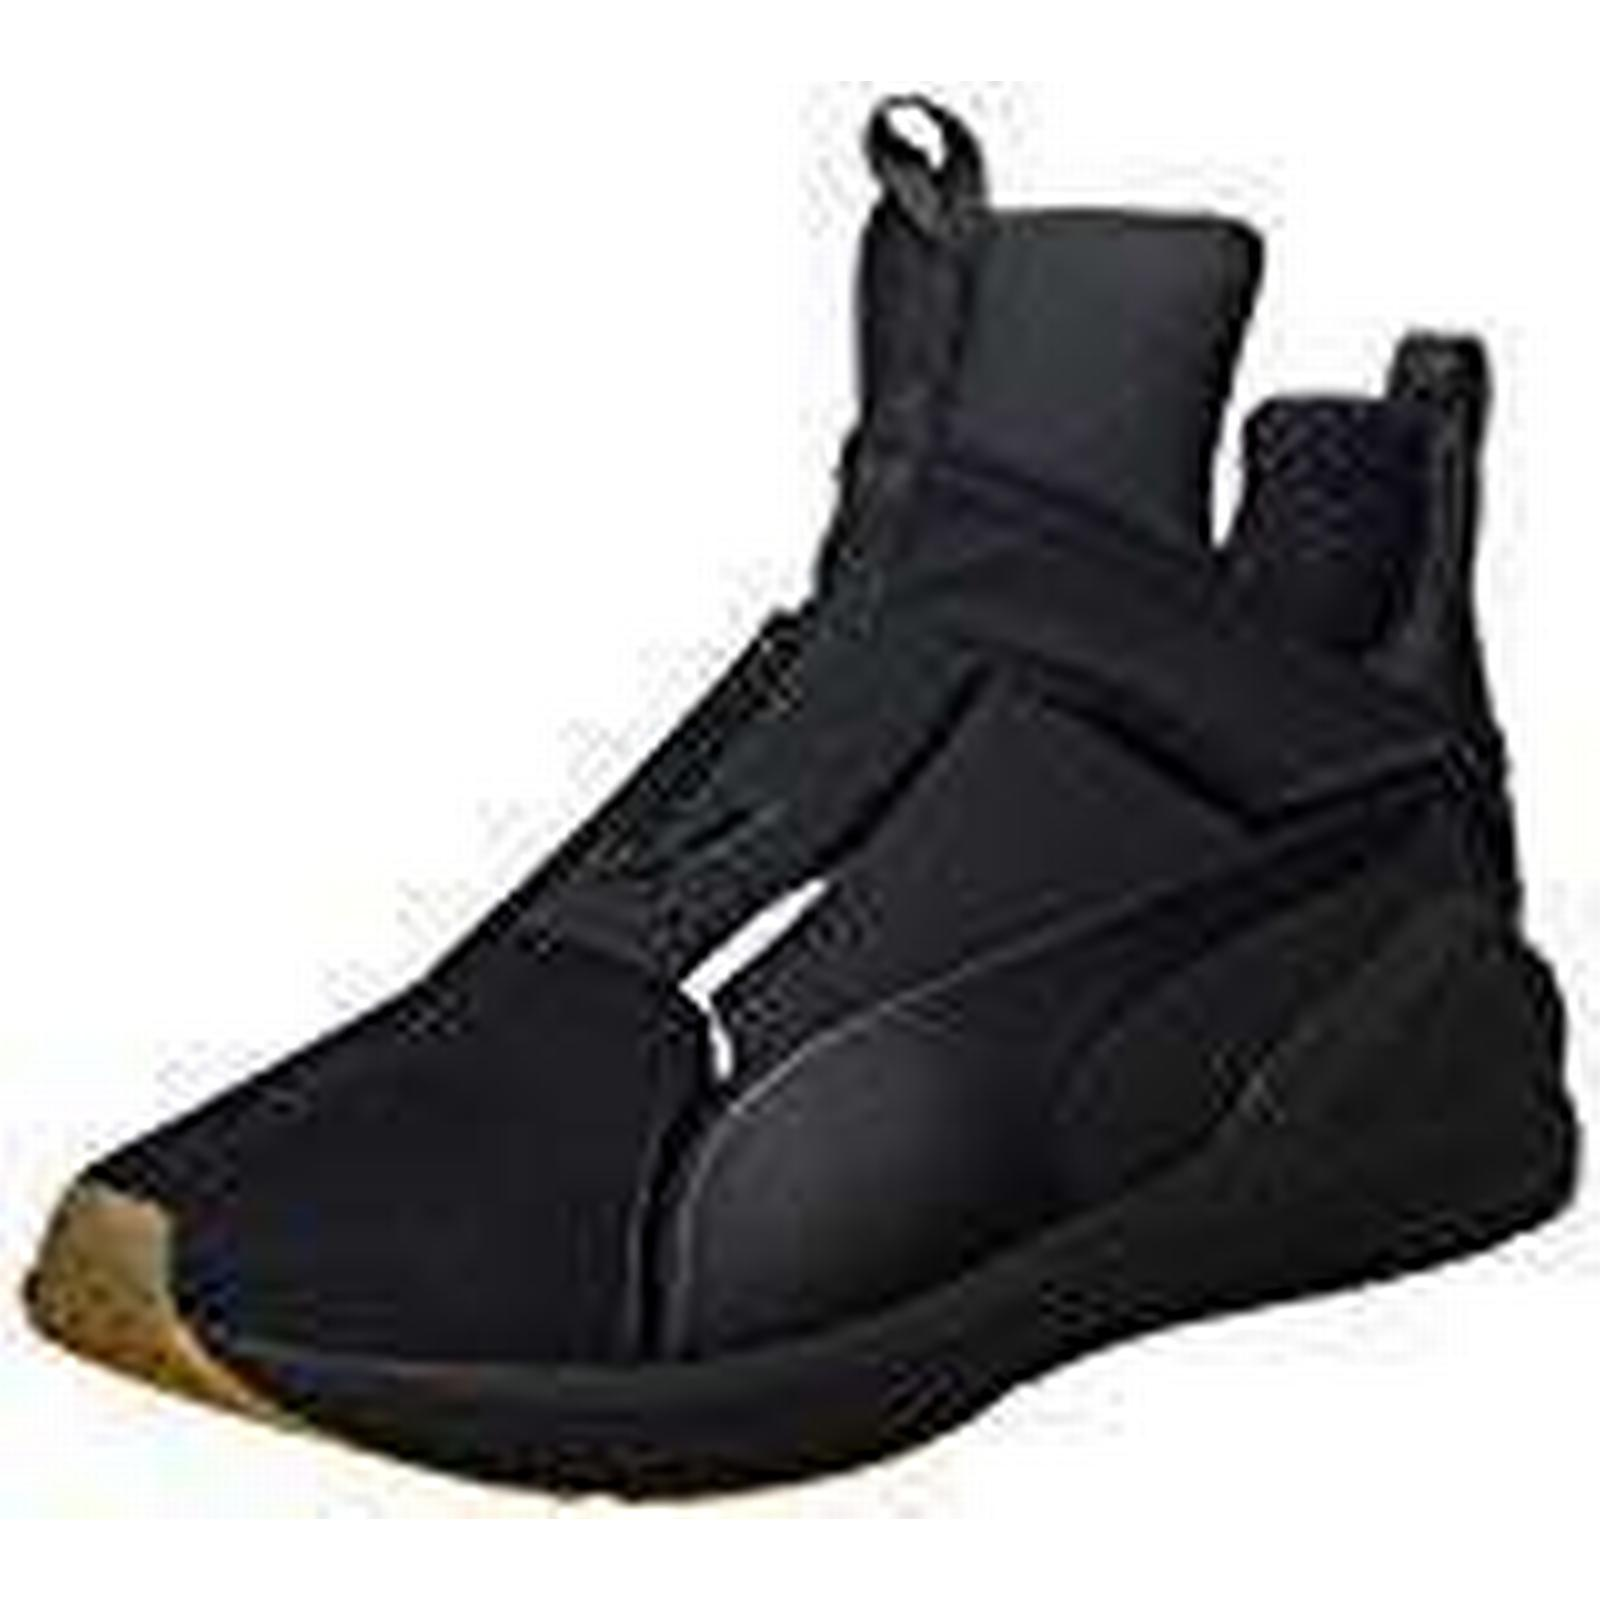 new style dcfd1 454ba Puma-Women-s-Fierce-NBK-Naturals-Fitness-Shoes -Beige-(Black-03)--7.5-UK-7.5-UK.jpg